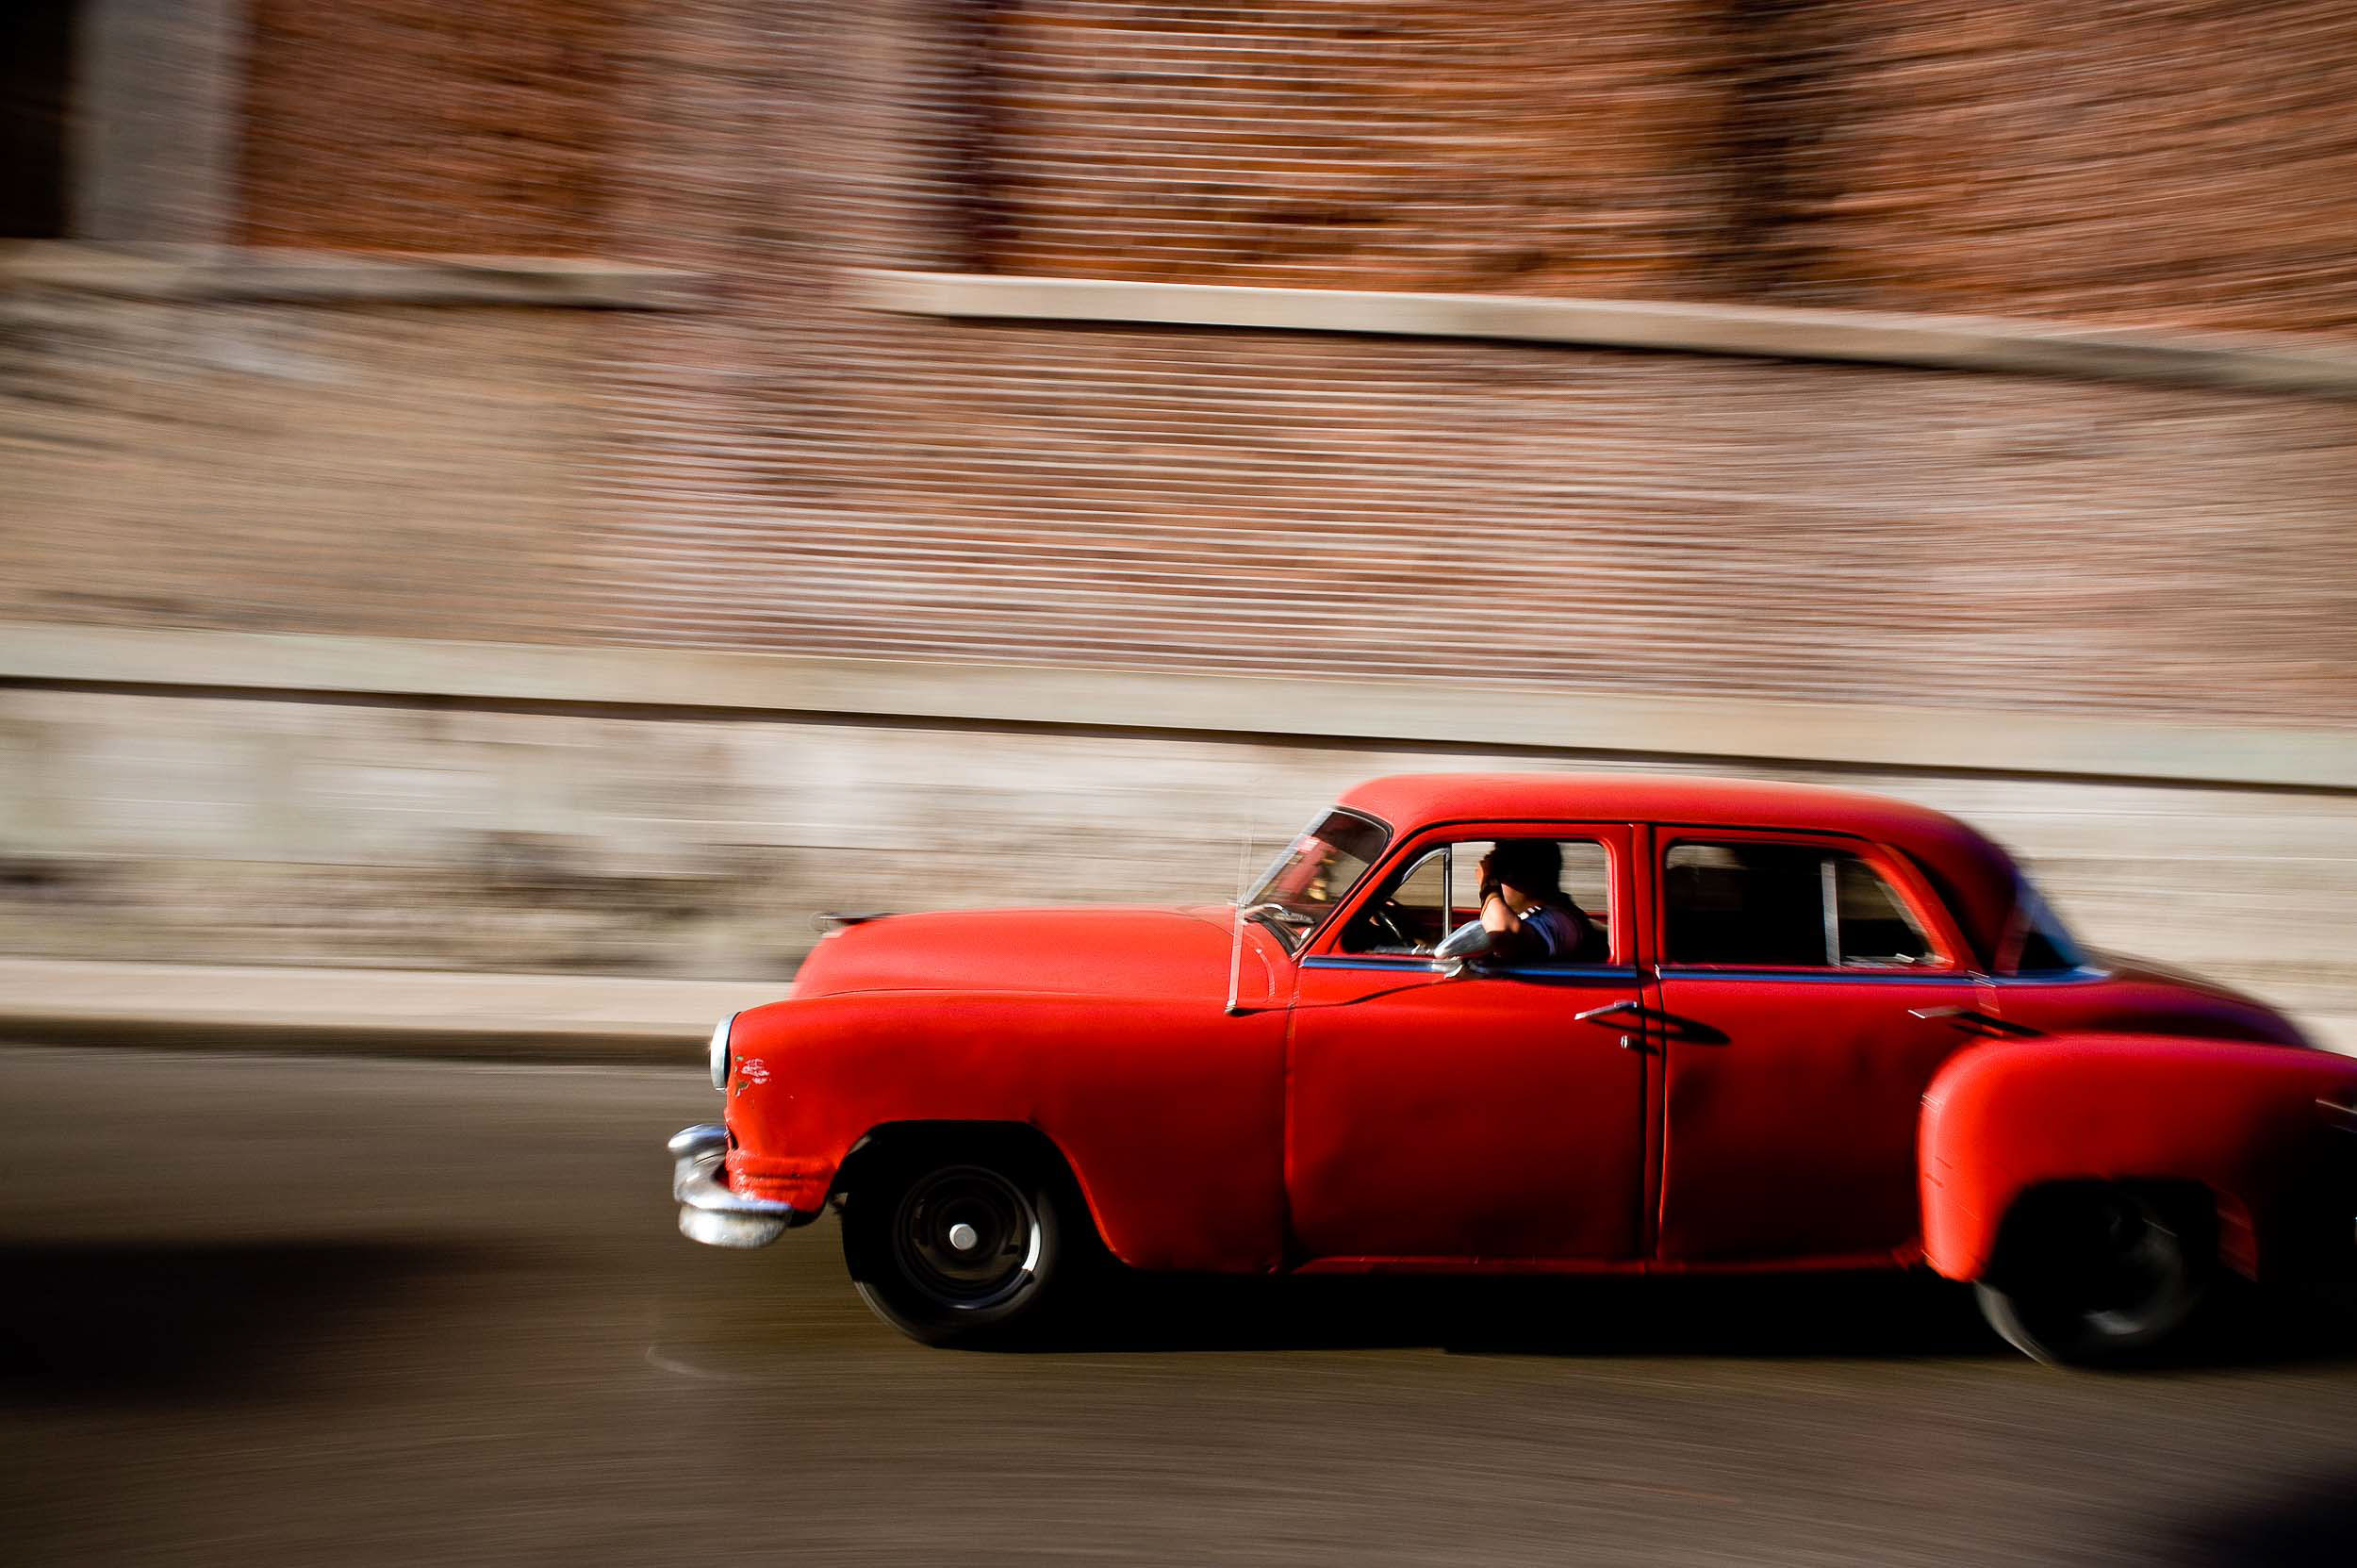 red-car-cuban-motion-travel-photographer-transport-havana-cuba